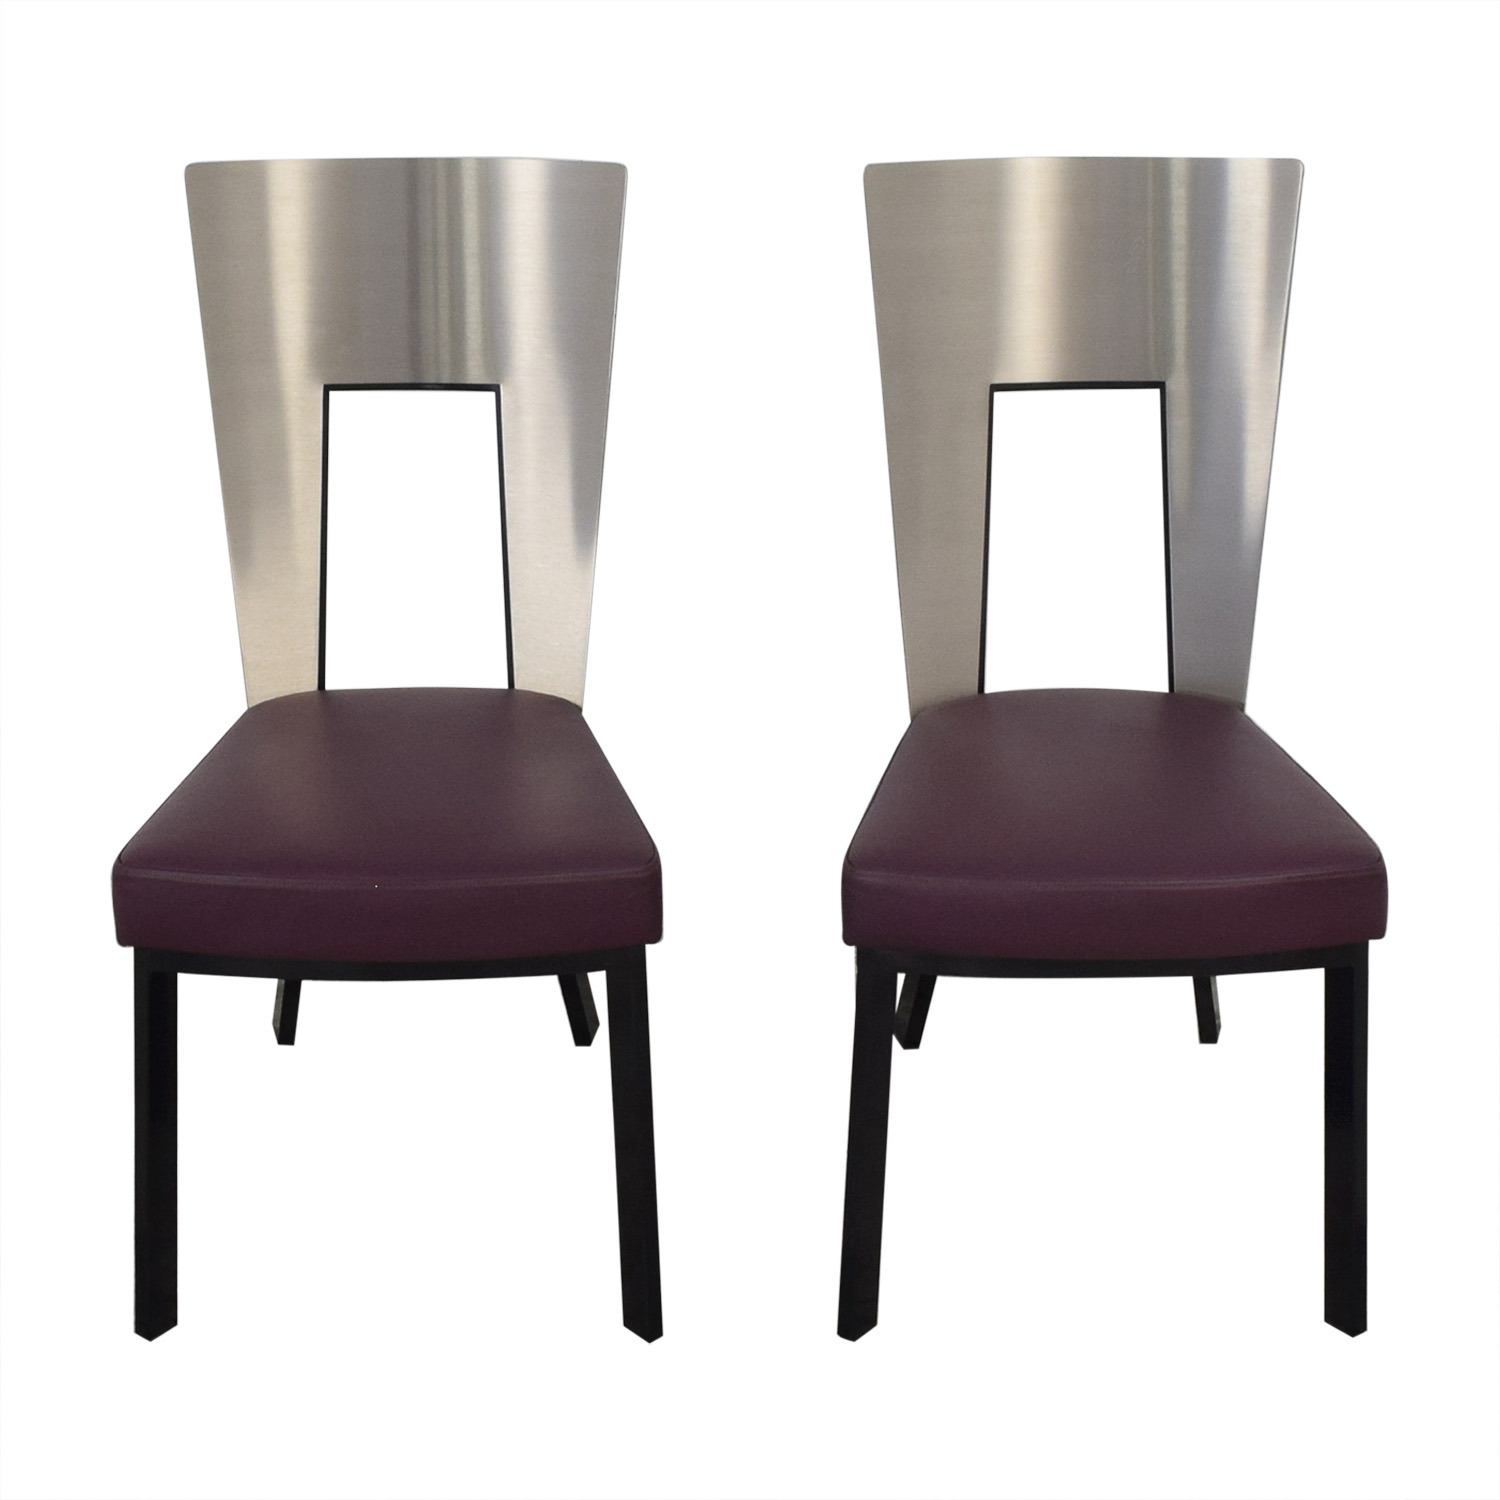 Remarkable 76 Off Elite Modern Elite Modern Regal Dining Chairs Chairs Lamtechconsult Wood Chair Design Ideas Lamtechconsultcom